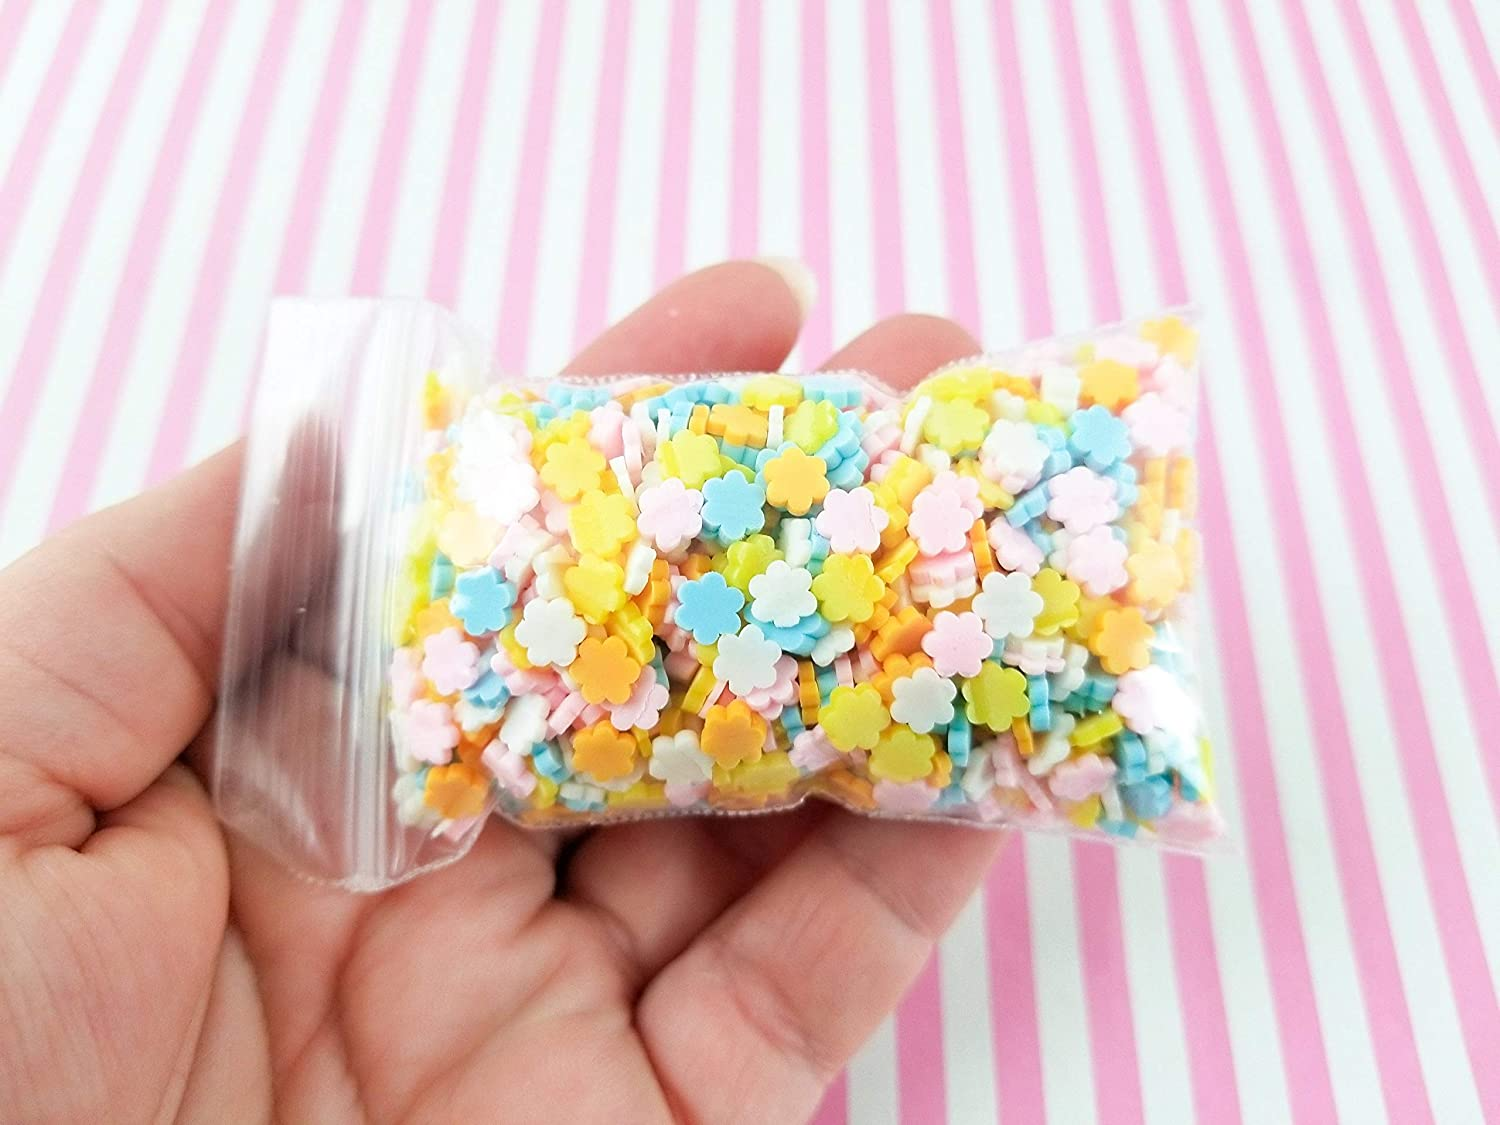 Affordable Decoden Funfetti Pastel Rainbow Polymer Clay Round Confetti Sprinkles Fake Free Shipping Eligible Slime Supplies #02